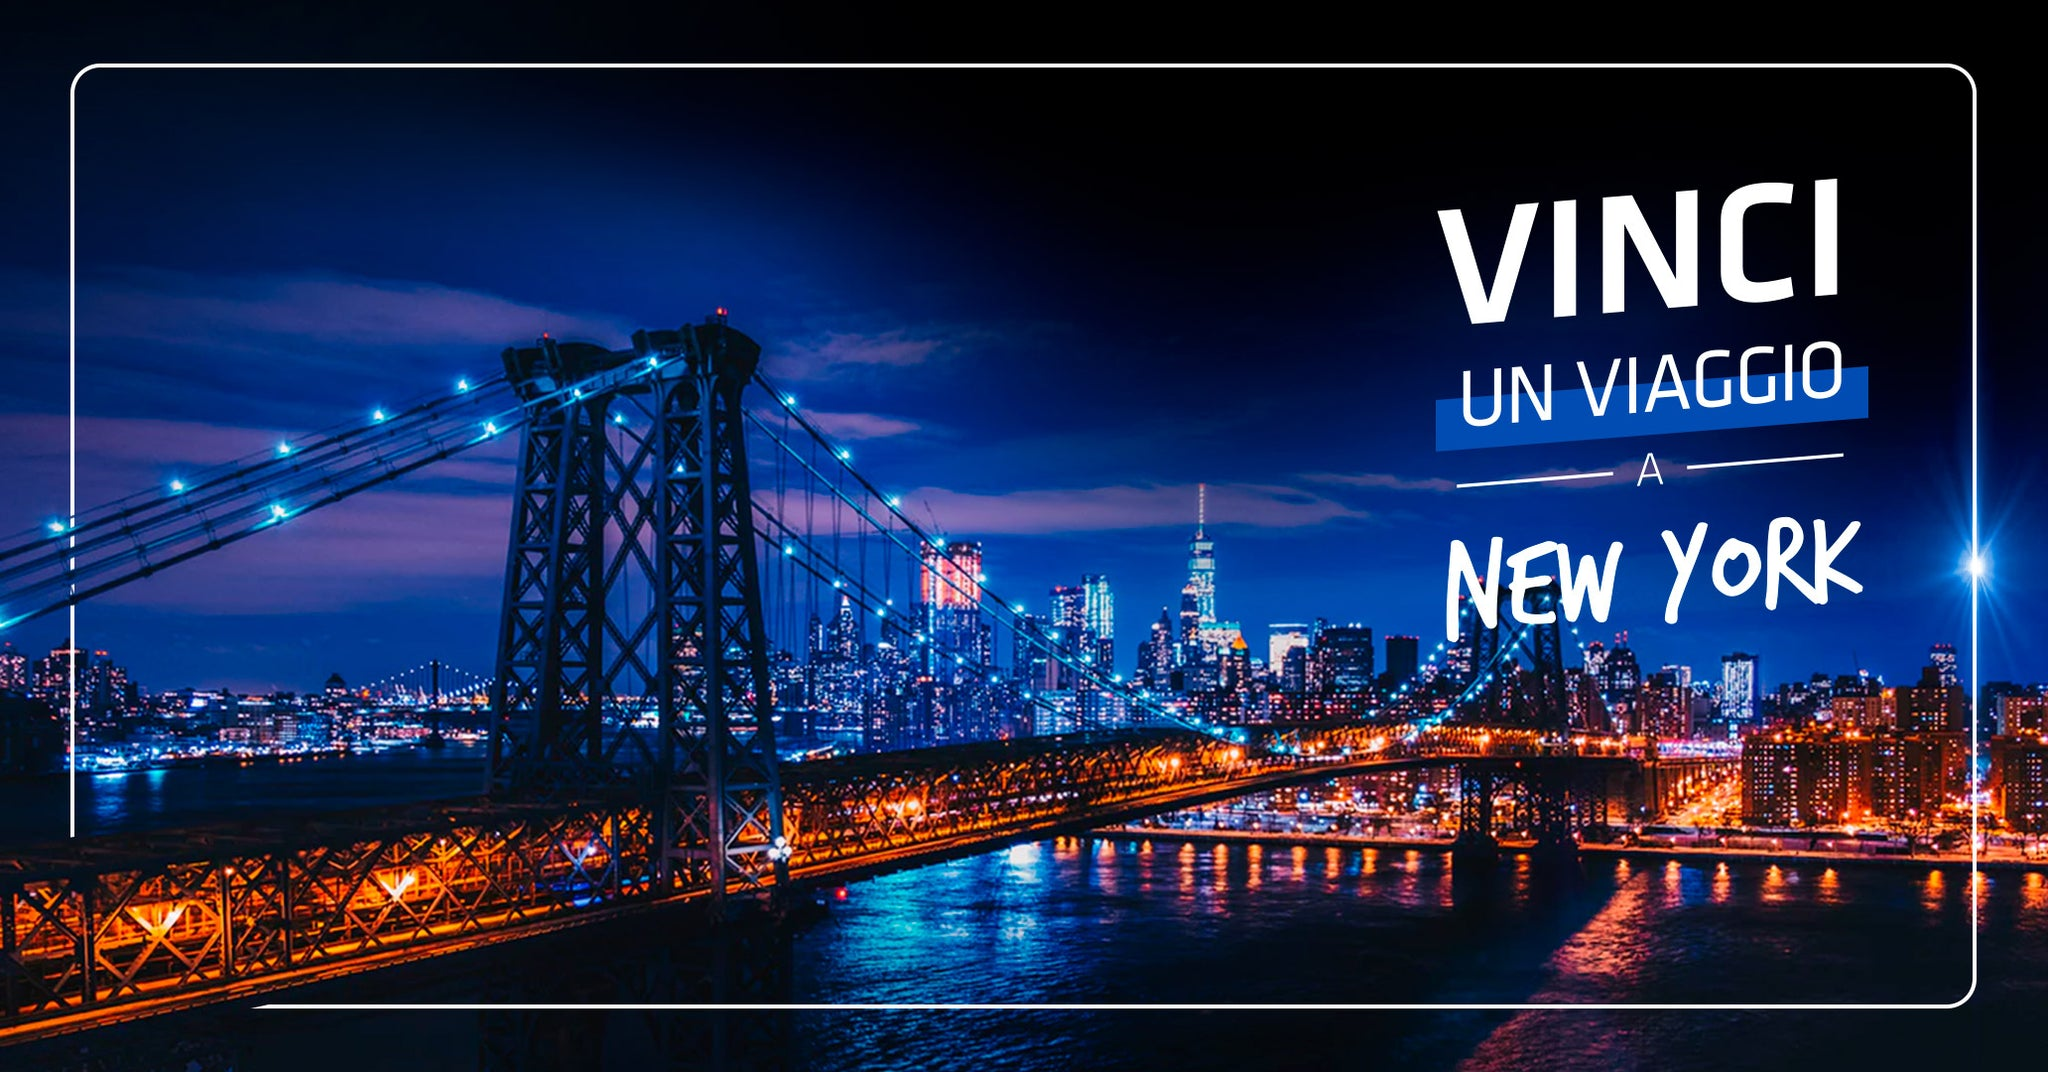 Vinci un viaggio a New York